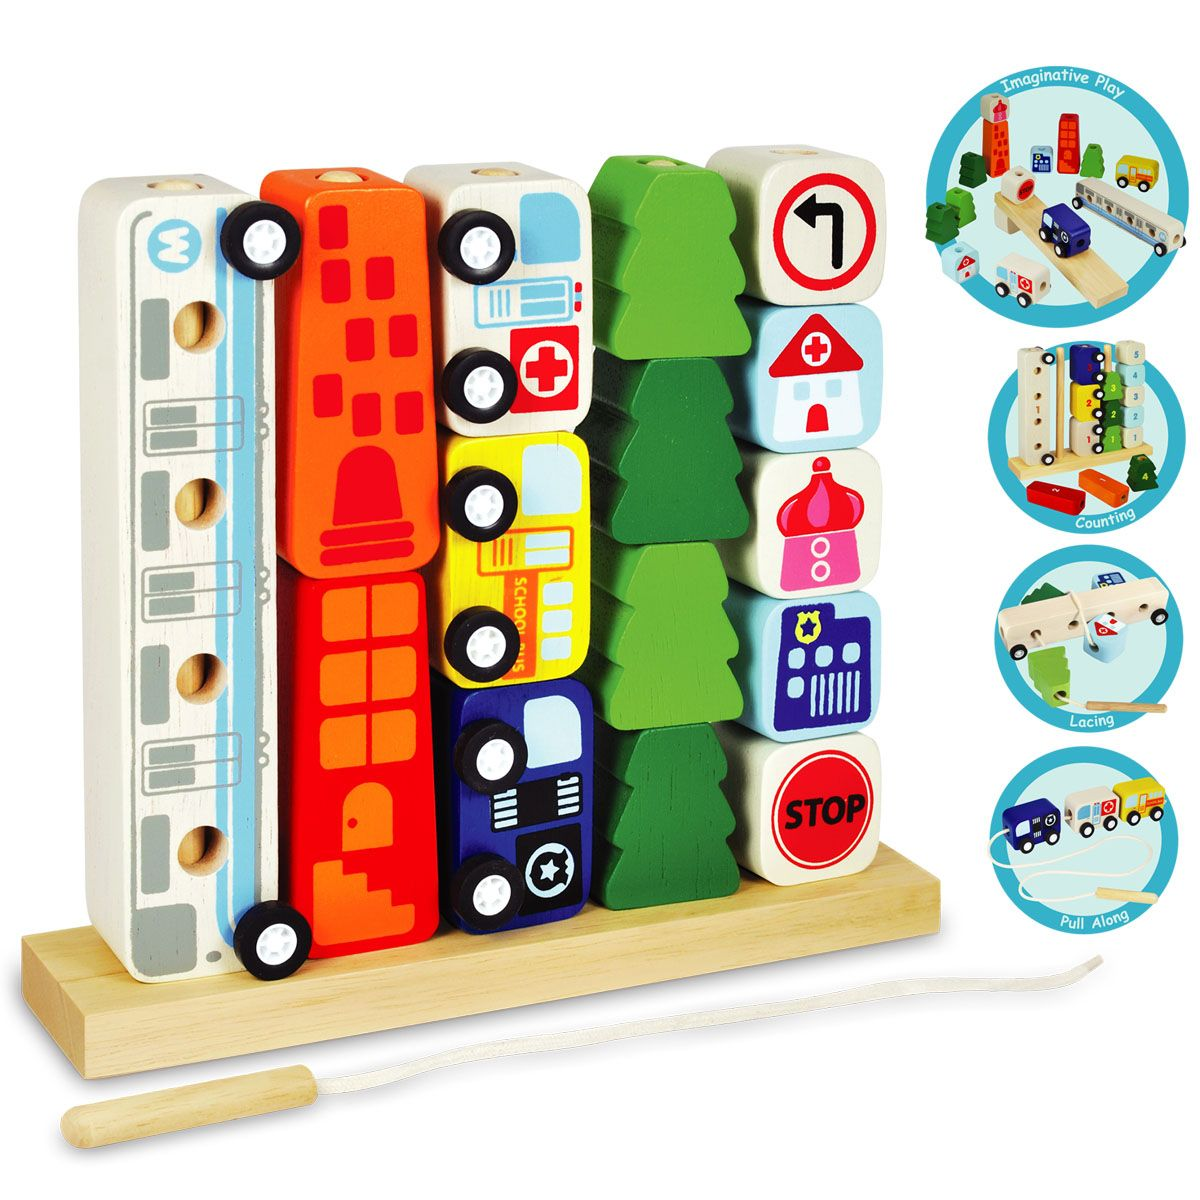 Wooden toys images  Sort and Count City  Jouets bois  Pinterest  Count Wooden toys